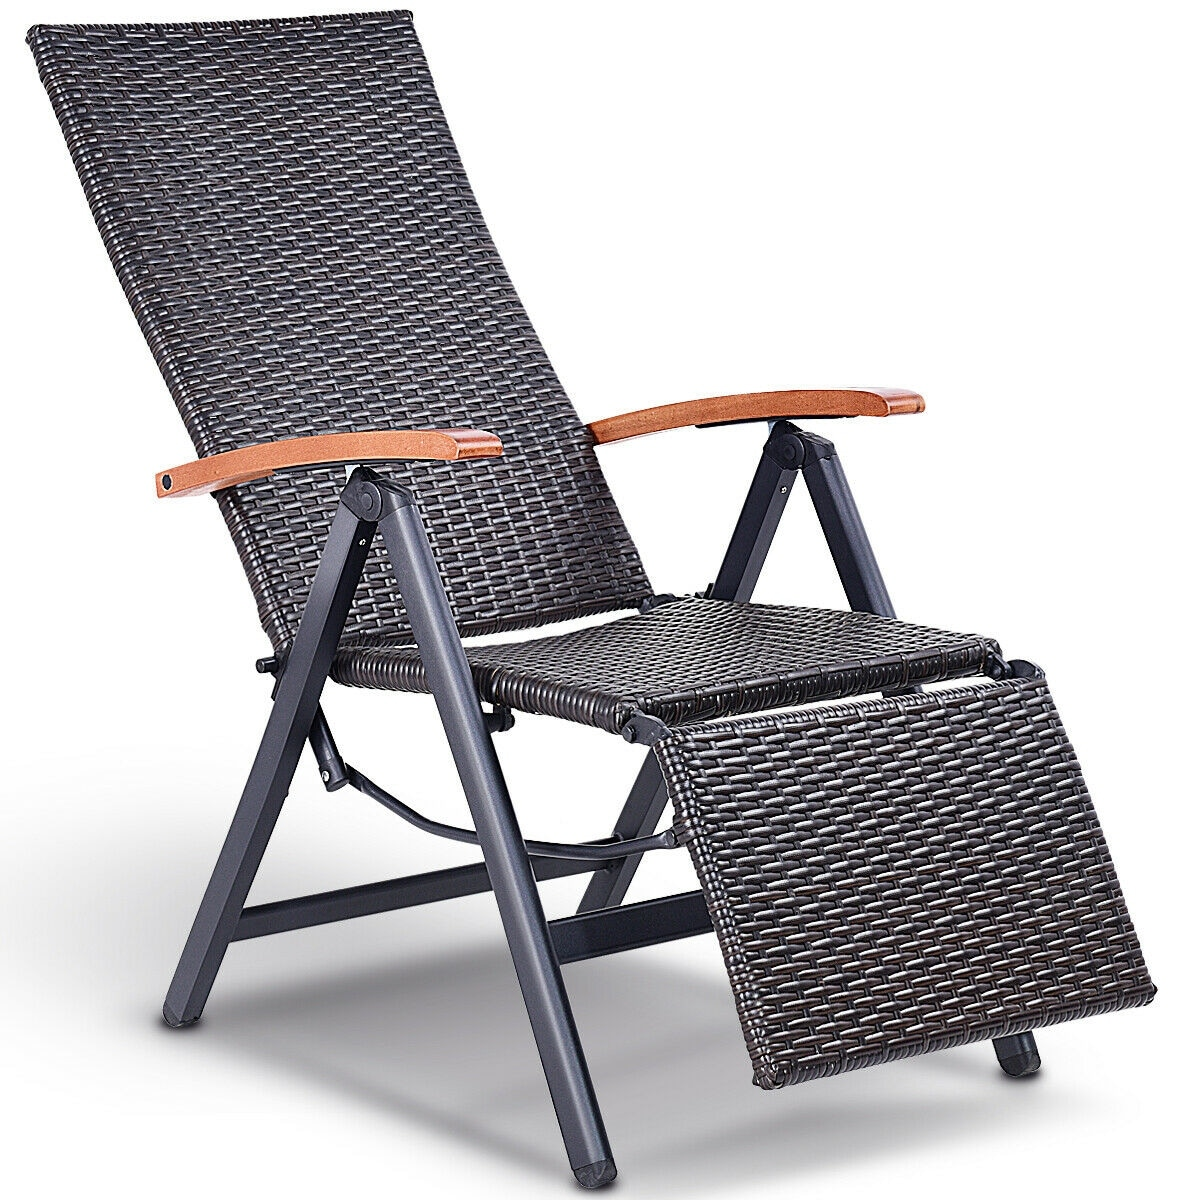 Patio Folding Chairs Costway Patio Folding Chair Lounger Recliner Chair Rattan Aluminum Garden Recliner Chair